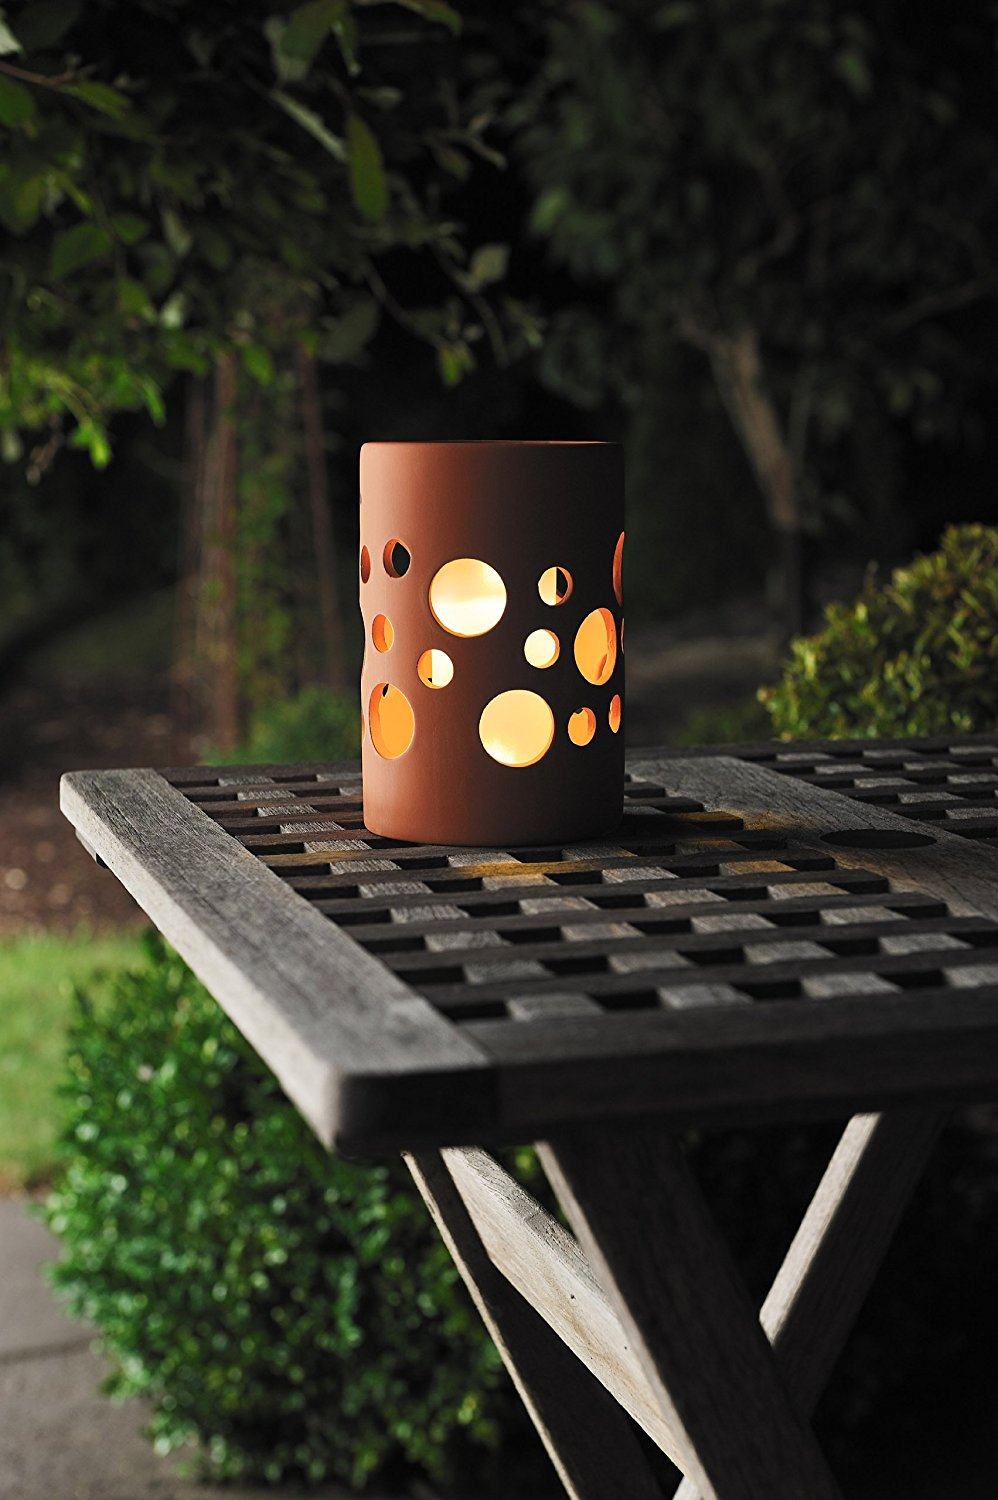 Solar Powered Table Lighting & Solar Accessories